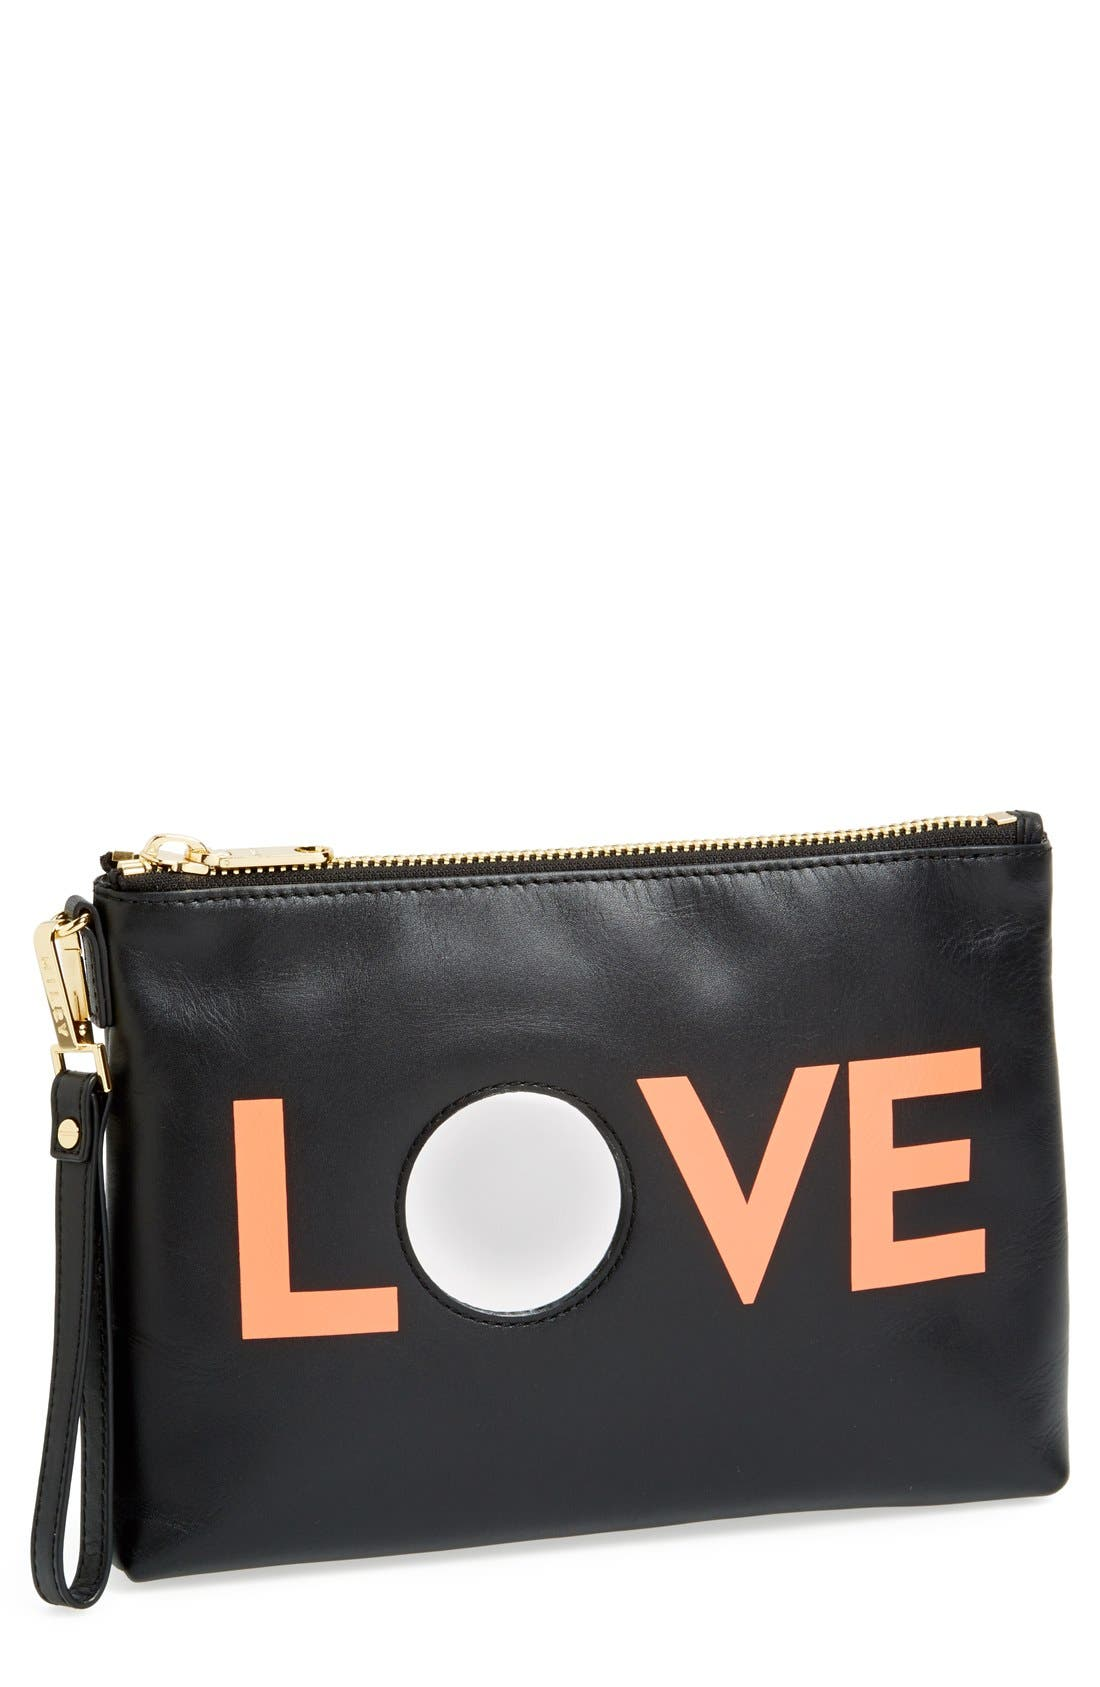 Main Image - Milly 'Love' Wristlet Clutch